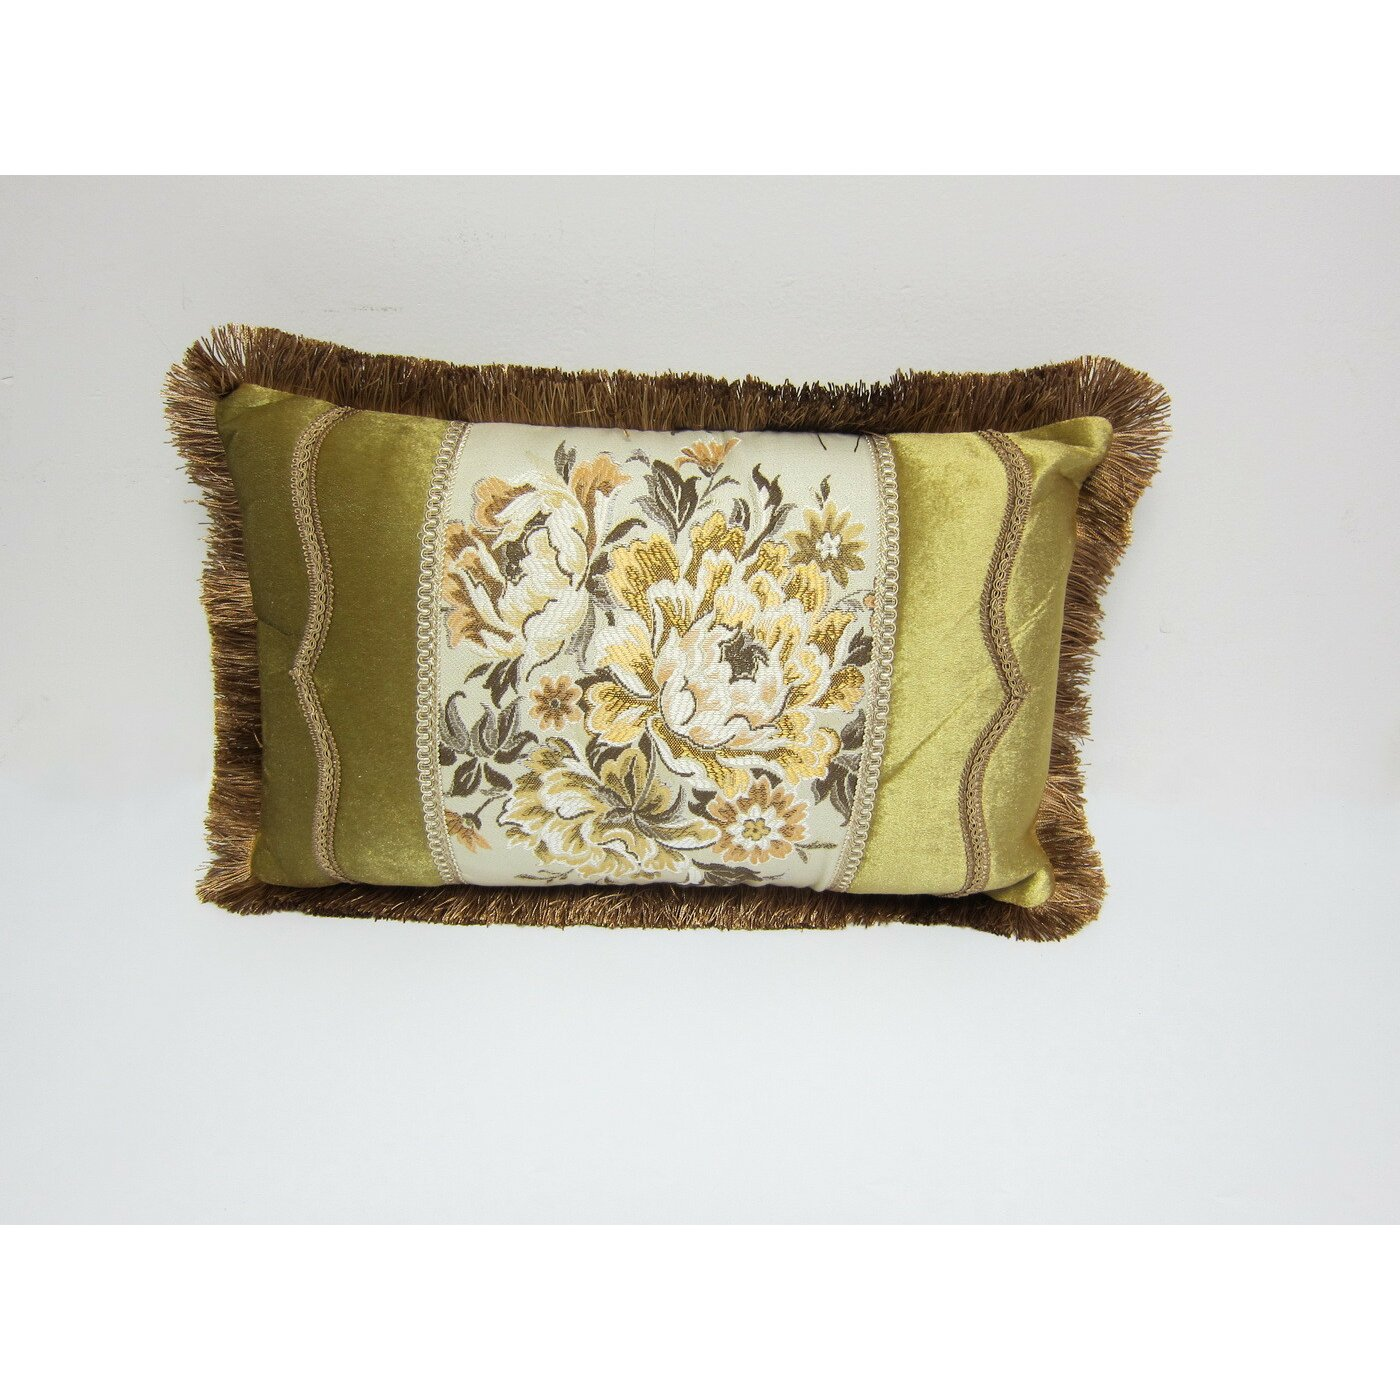 Decorative Floral Pillow Covers : AirDoDo European Floral Decorative Lumbar Pillow Cover Wayfair